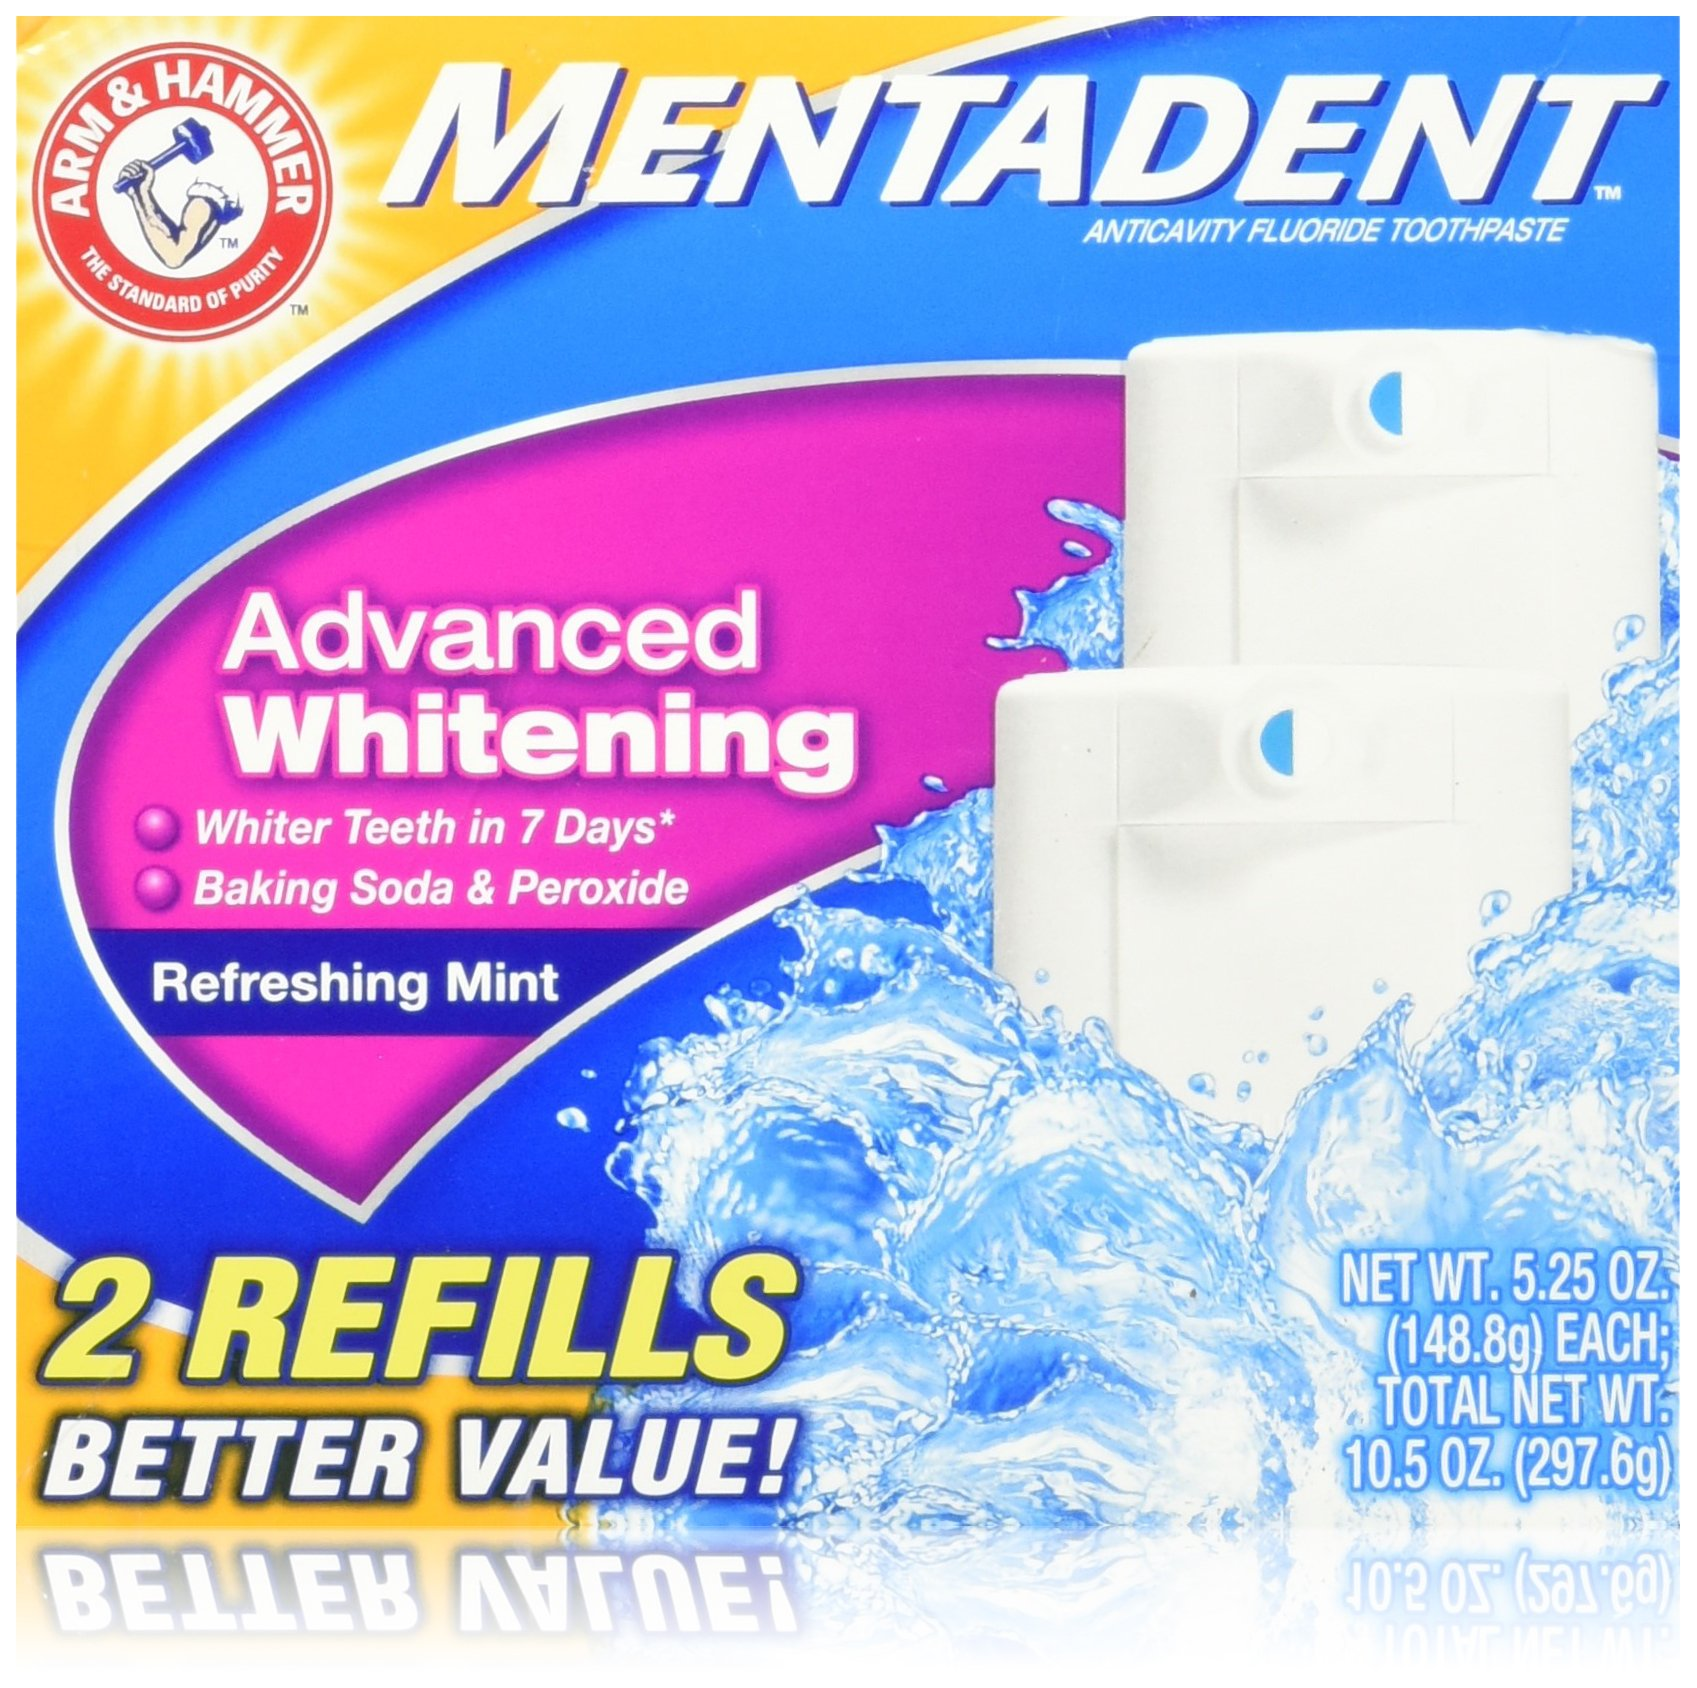 Mentadent Toothpaste 2 Refills Advanced Whitening Refreshing Mint 5.25 Oz. (Pack of 2)